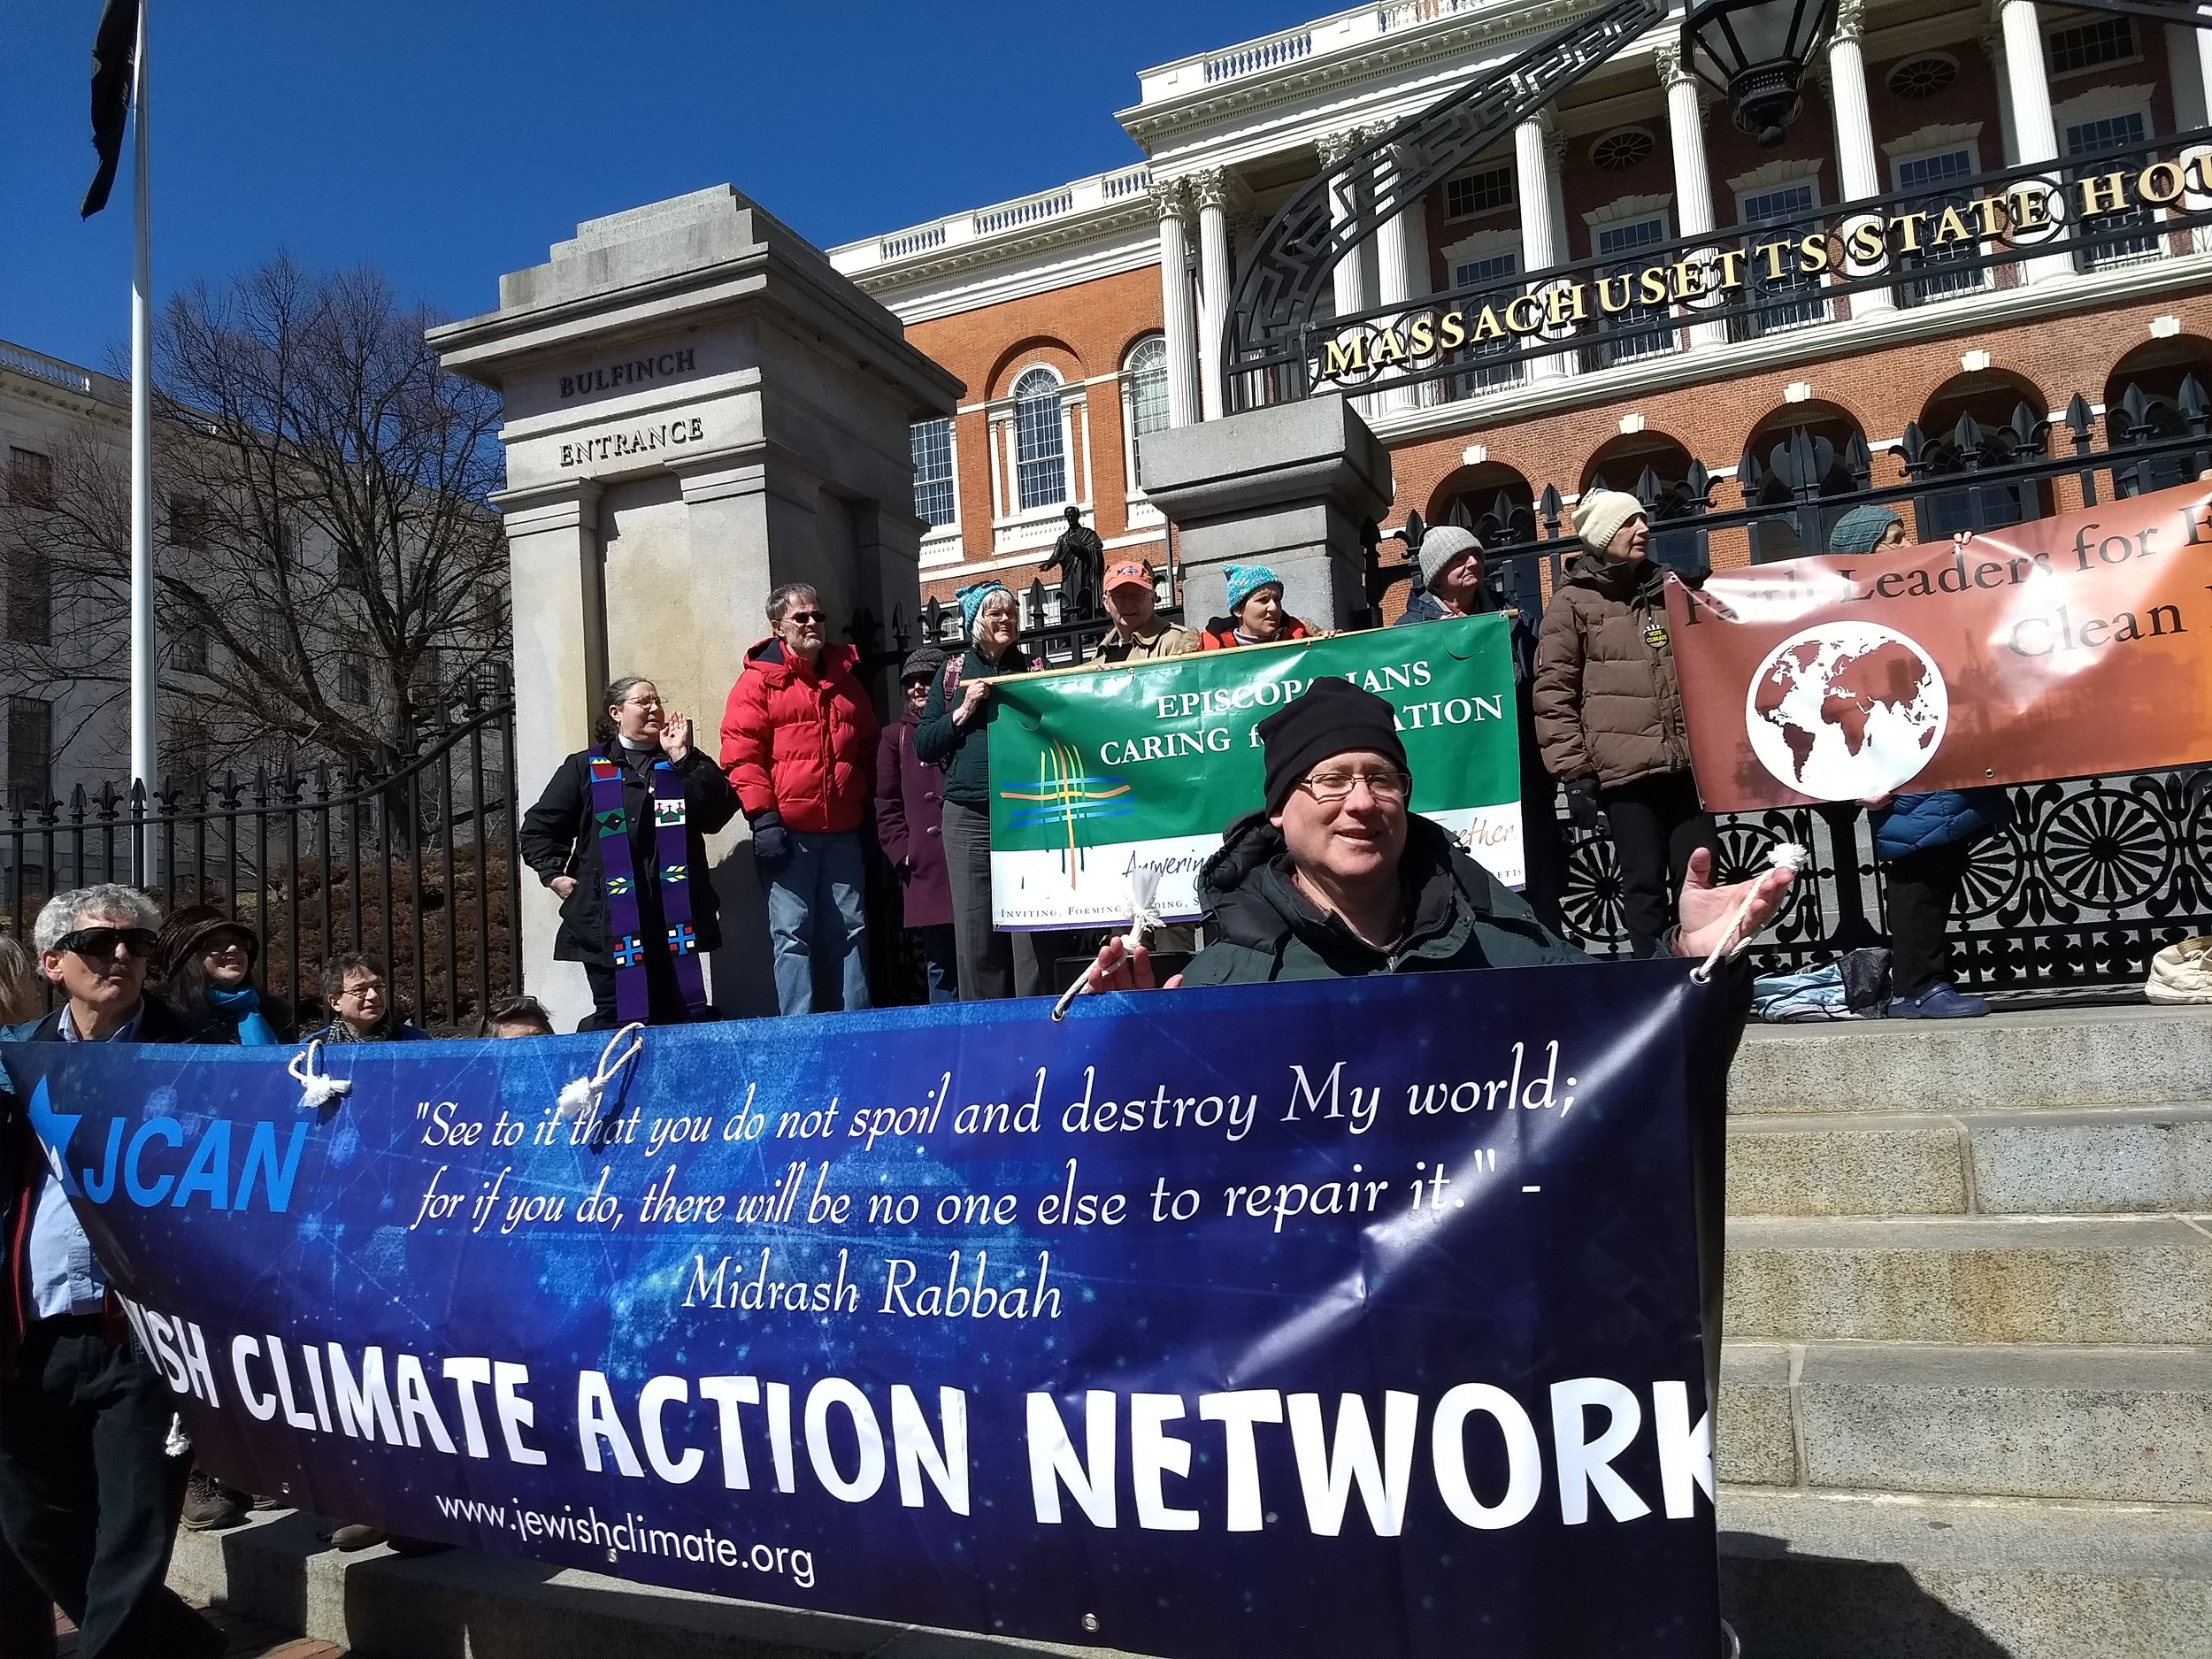 About - JCAN helps Jewish communities face the climate crisis and take action. Learn aboutour mission, our team, and what we do.